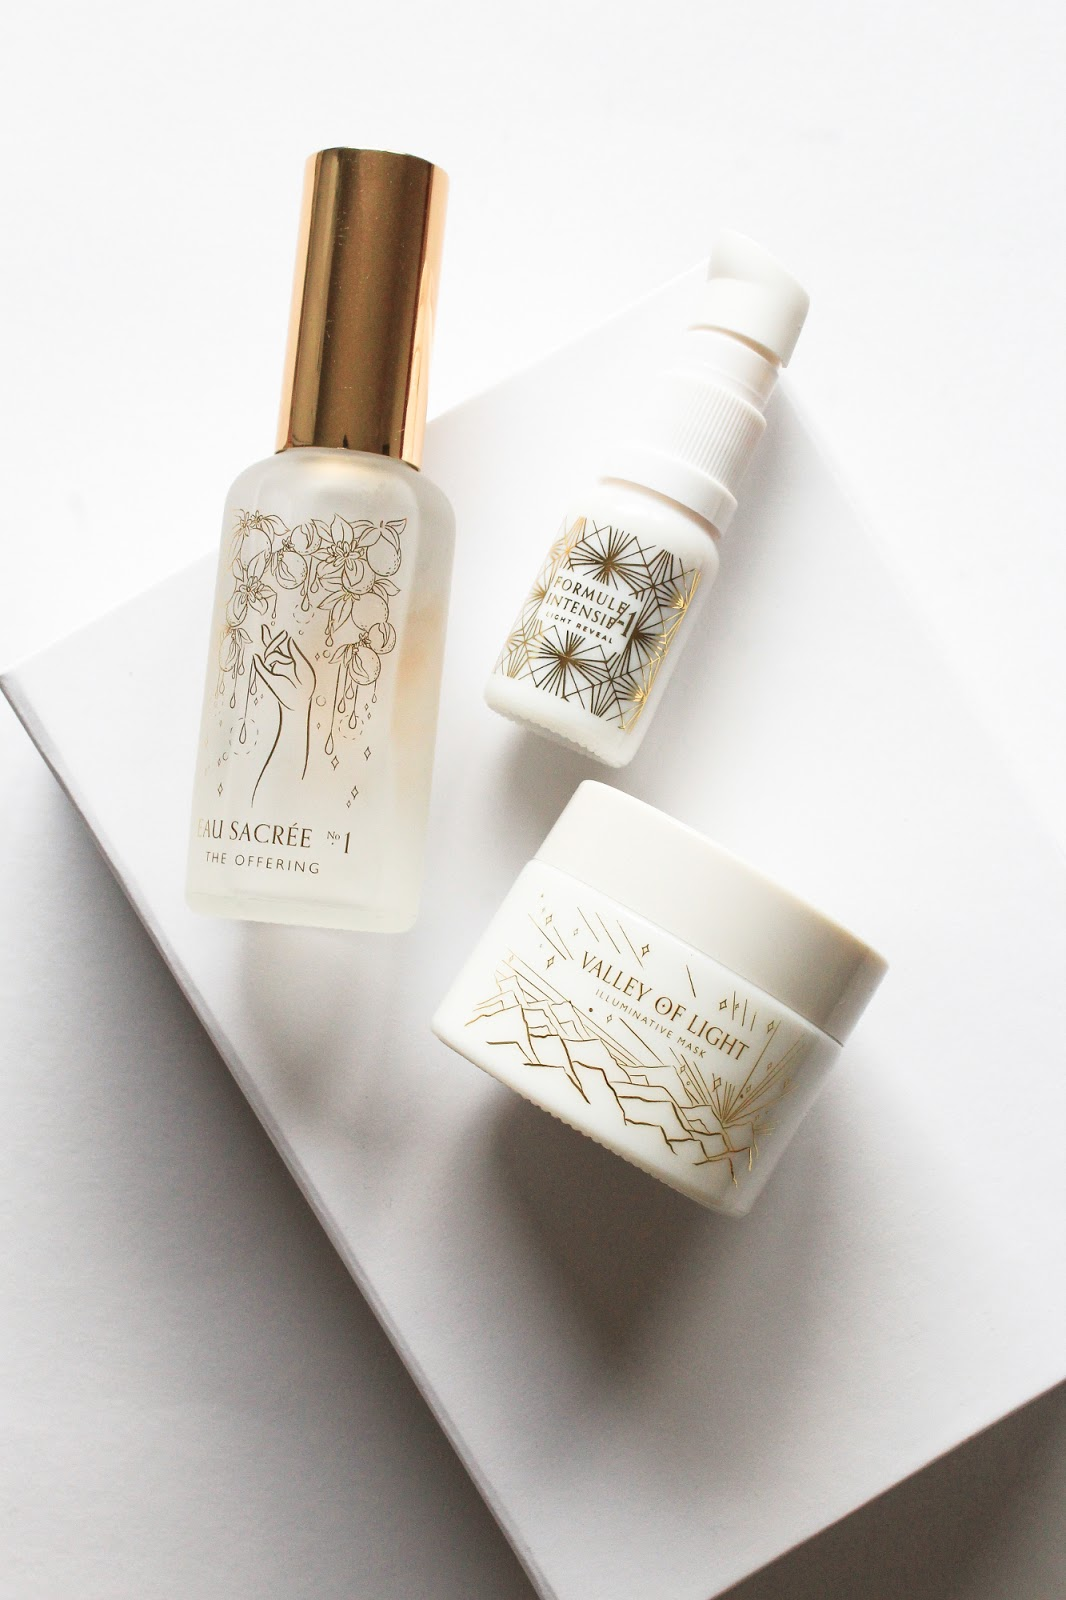 Wabi-Sabi Botanicals Indie Beauty Spotlight Discovery Limited Edition Beauty Heroes The Offering Ageless Ritual Facial Mist, Light Reveal Targeted Treatment Serum, Valley of Light Illuminative Mask